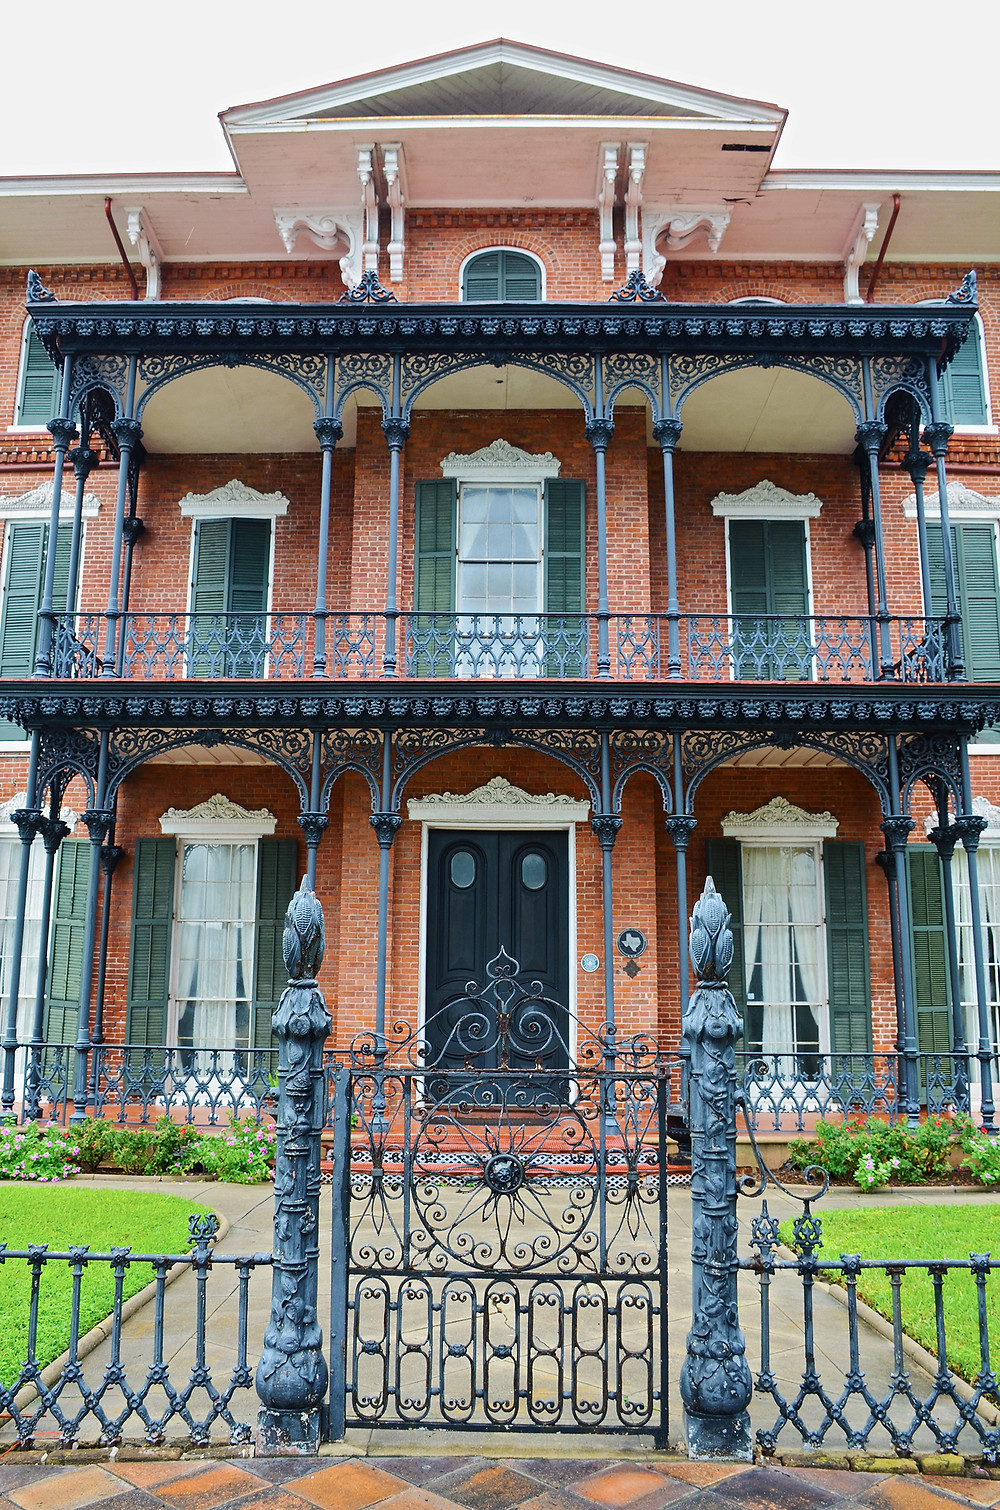 Ashton Villa in Galveston, Texas. General Order No. 3 was read from the balcony on June 19, 1865